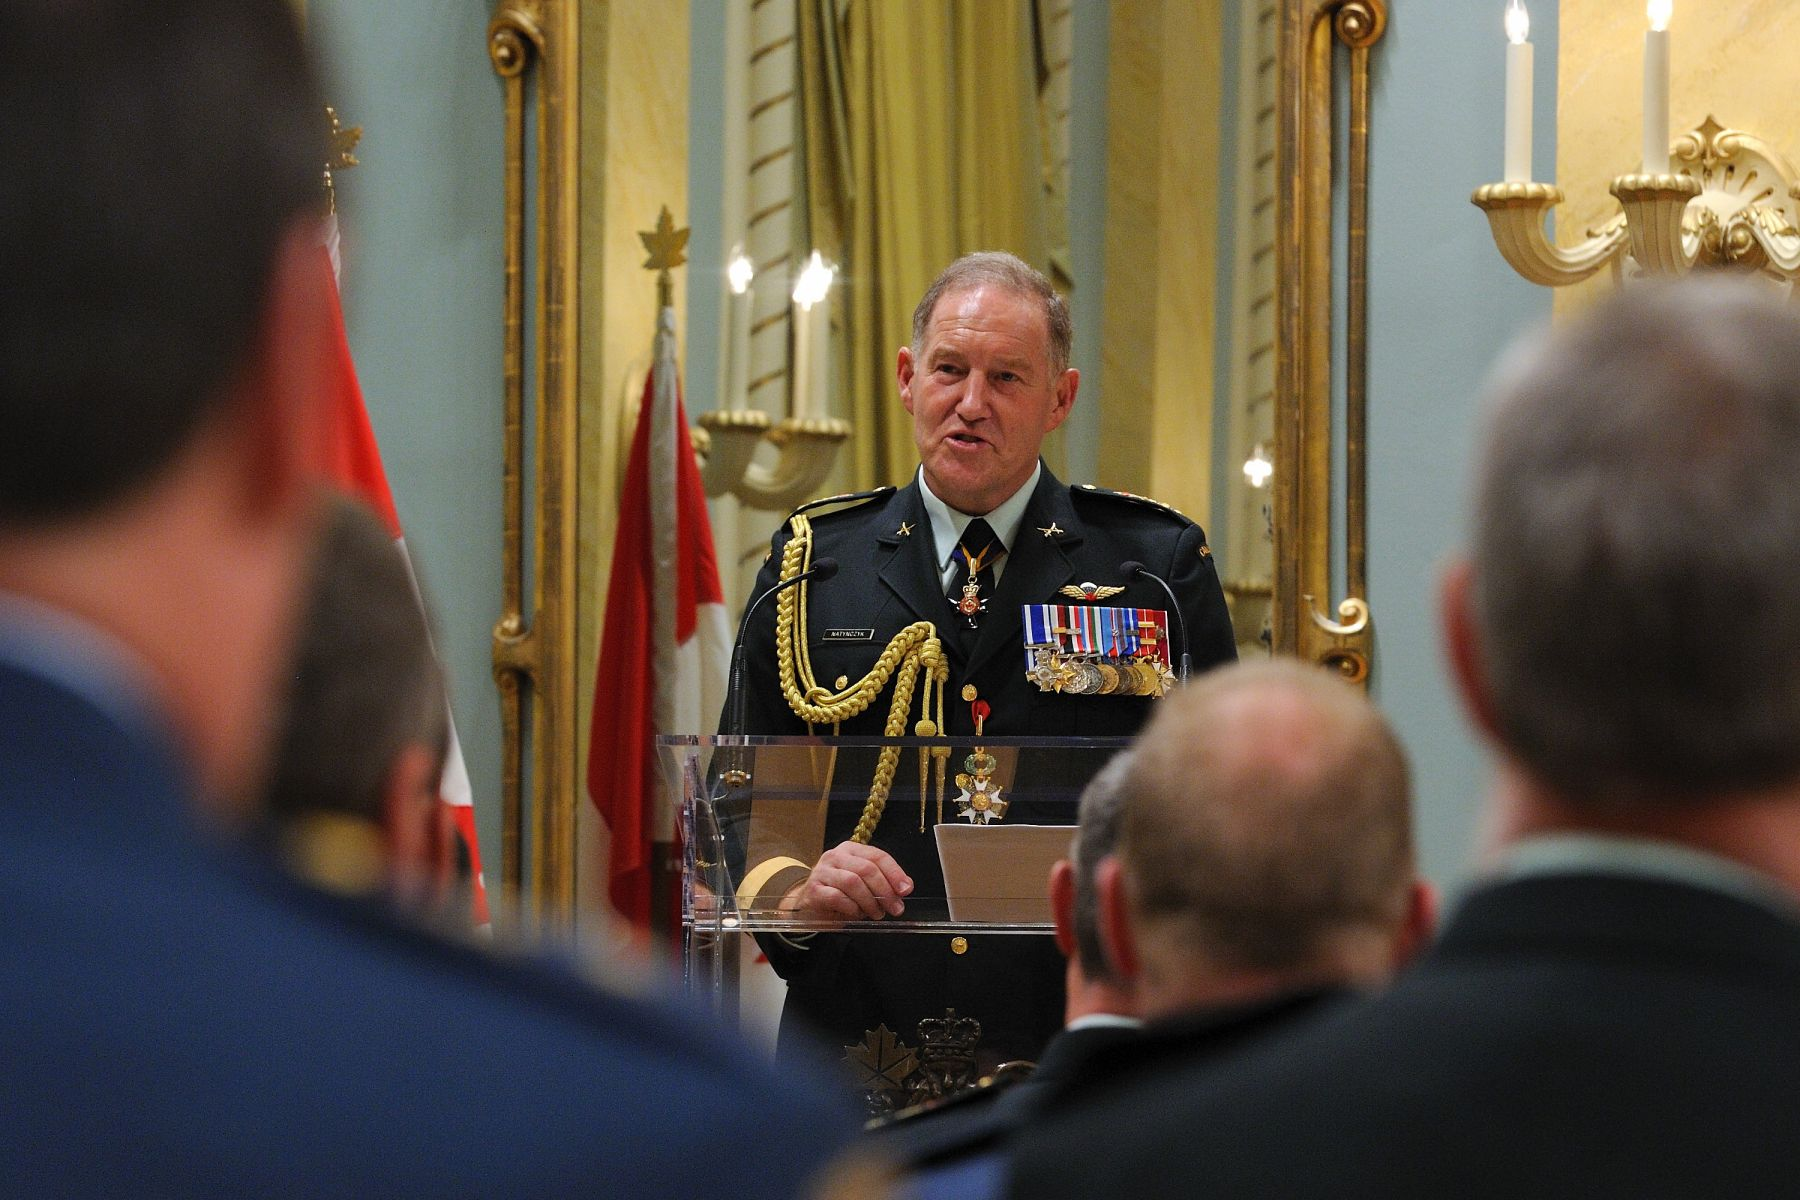 Chief of the Defence Staff General Walt Natynczyk thanked and congratulated members that were honoured on that day.